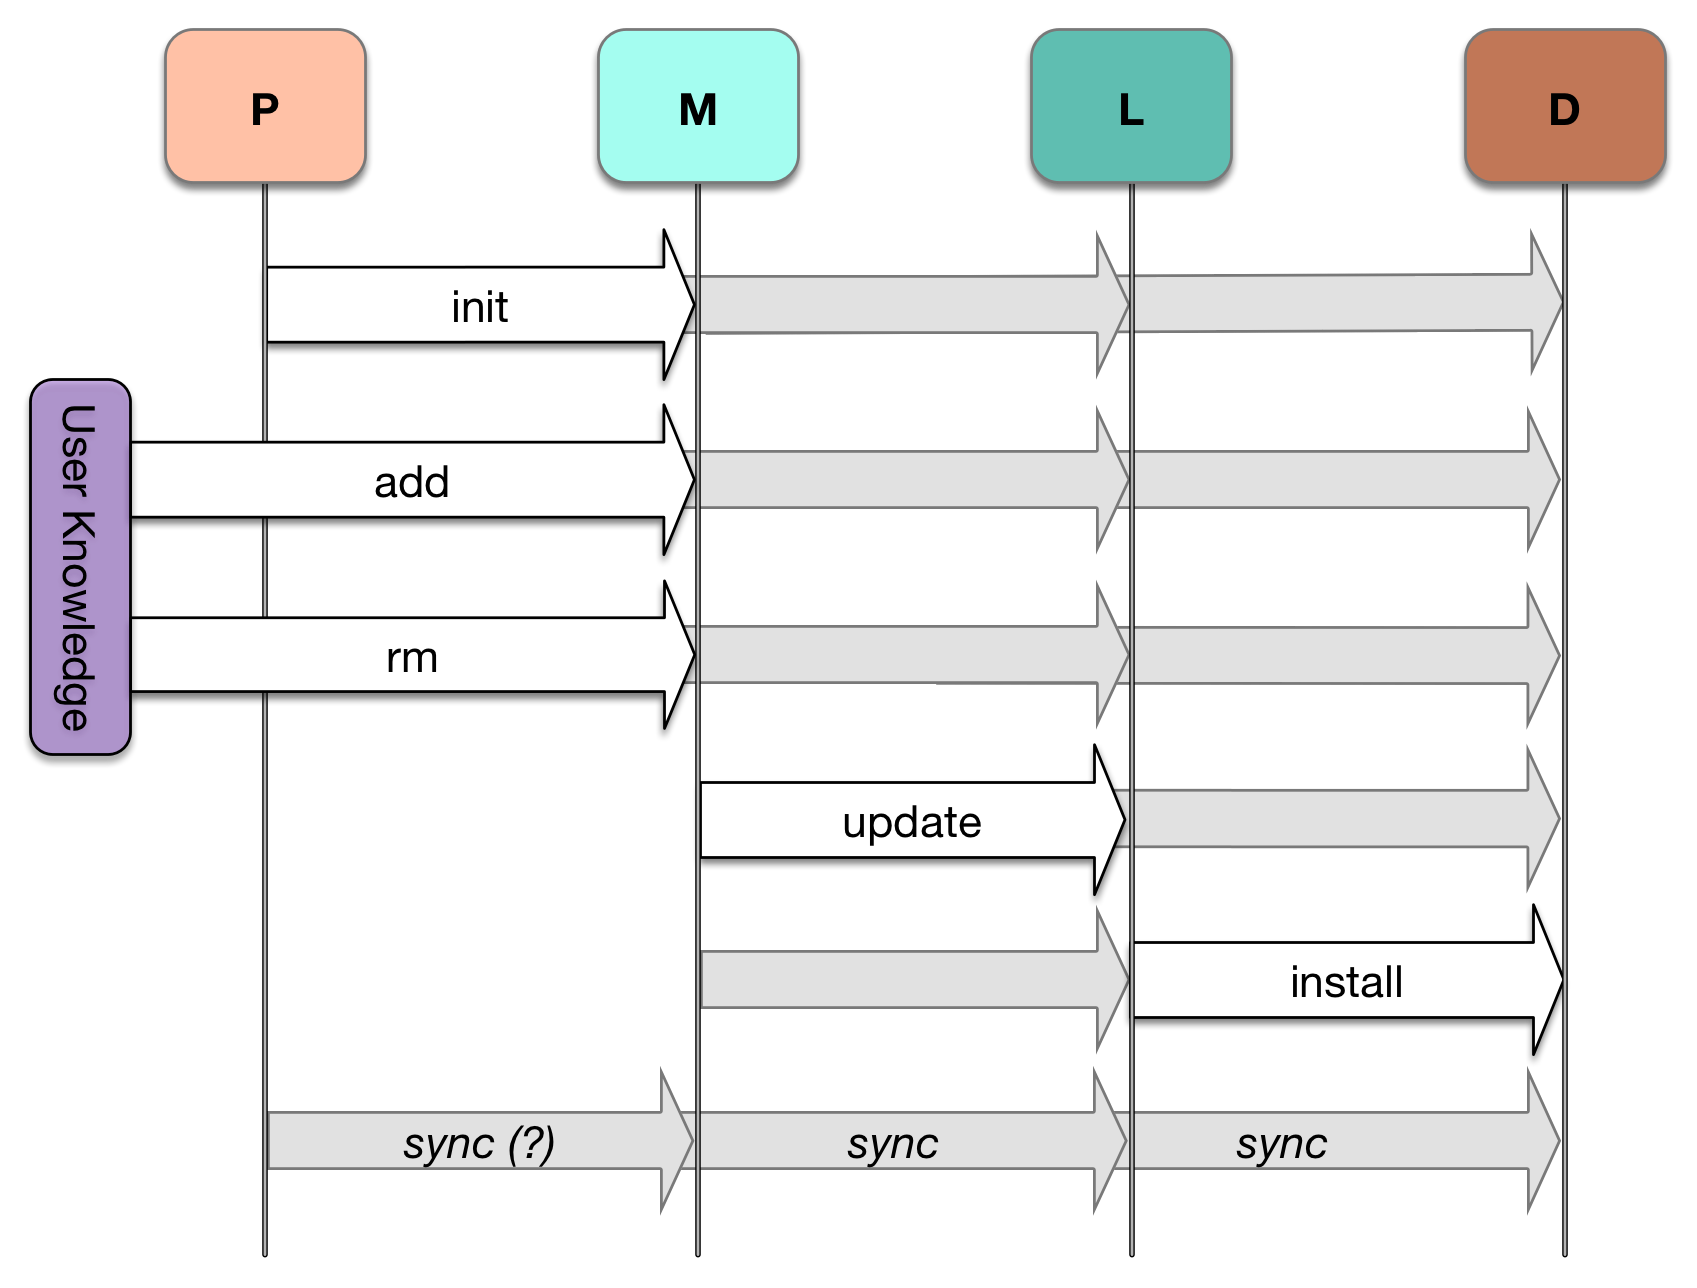 So You Want To Write A Package Manager Sam Boyer Medium Elements Of The Protocol State Machine Diagram Are All Commands Still Oriented Towards Same Type Mutation But They Rest Atop Pervasive Sync Operation That Ensures Computable Pre And